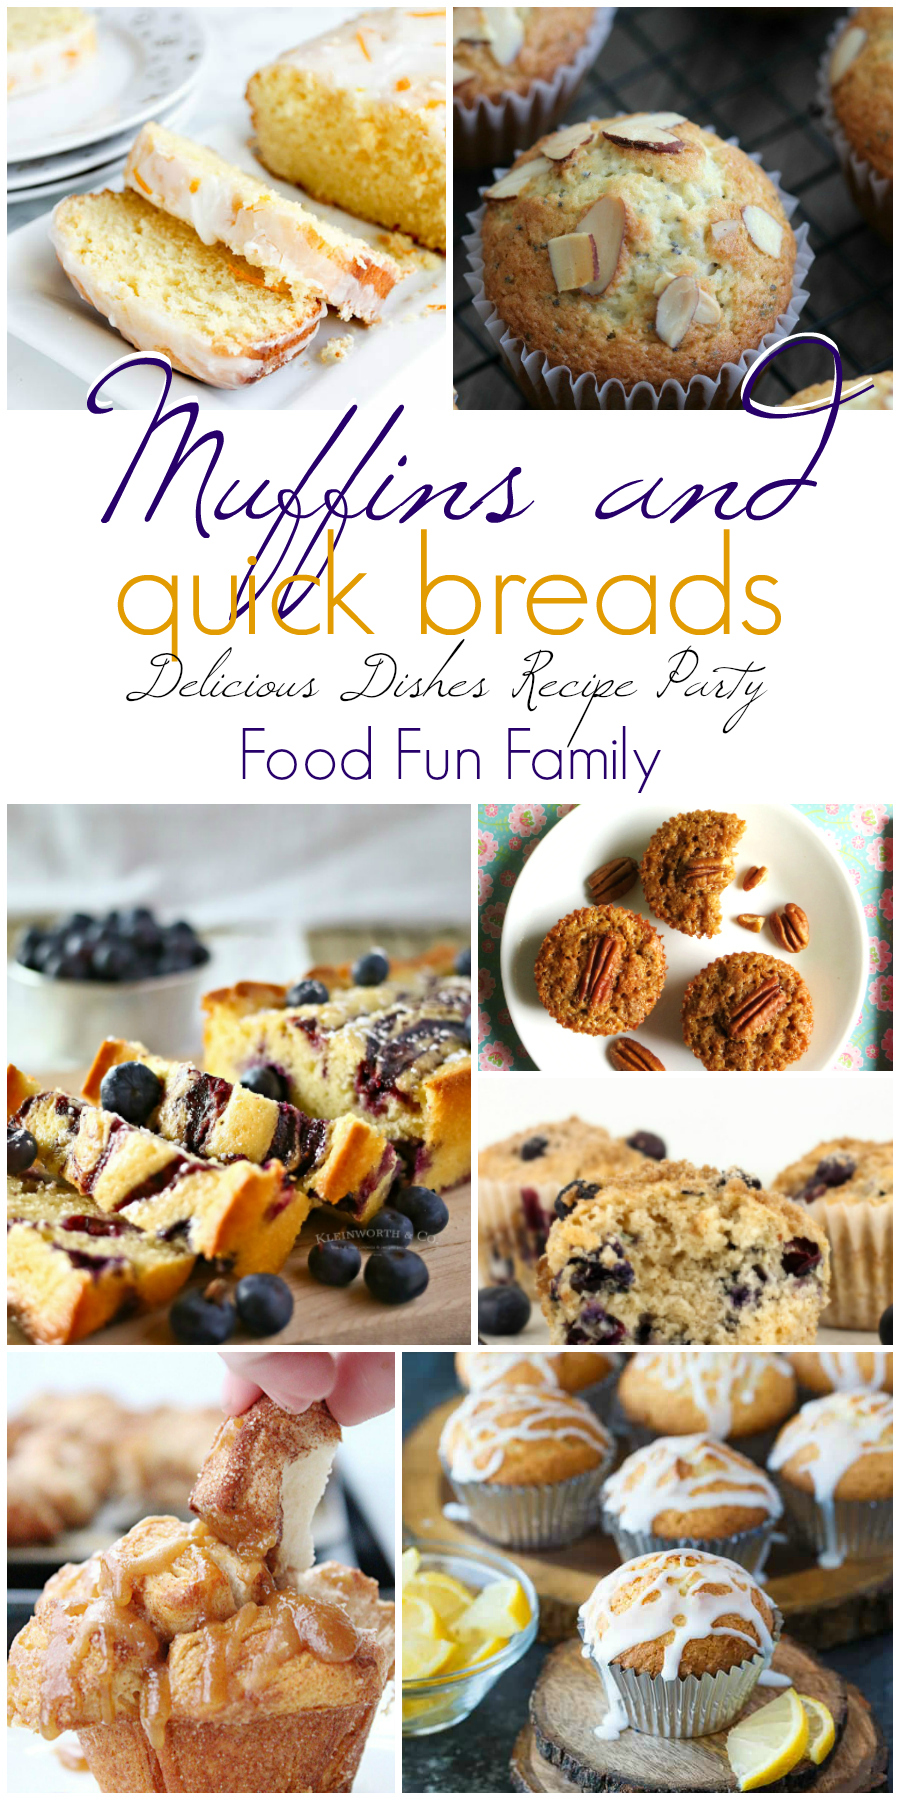 Muffins and Quick Breads - a Delicious Dishes Recipe Party collection from Food Fun Family